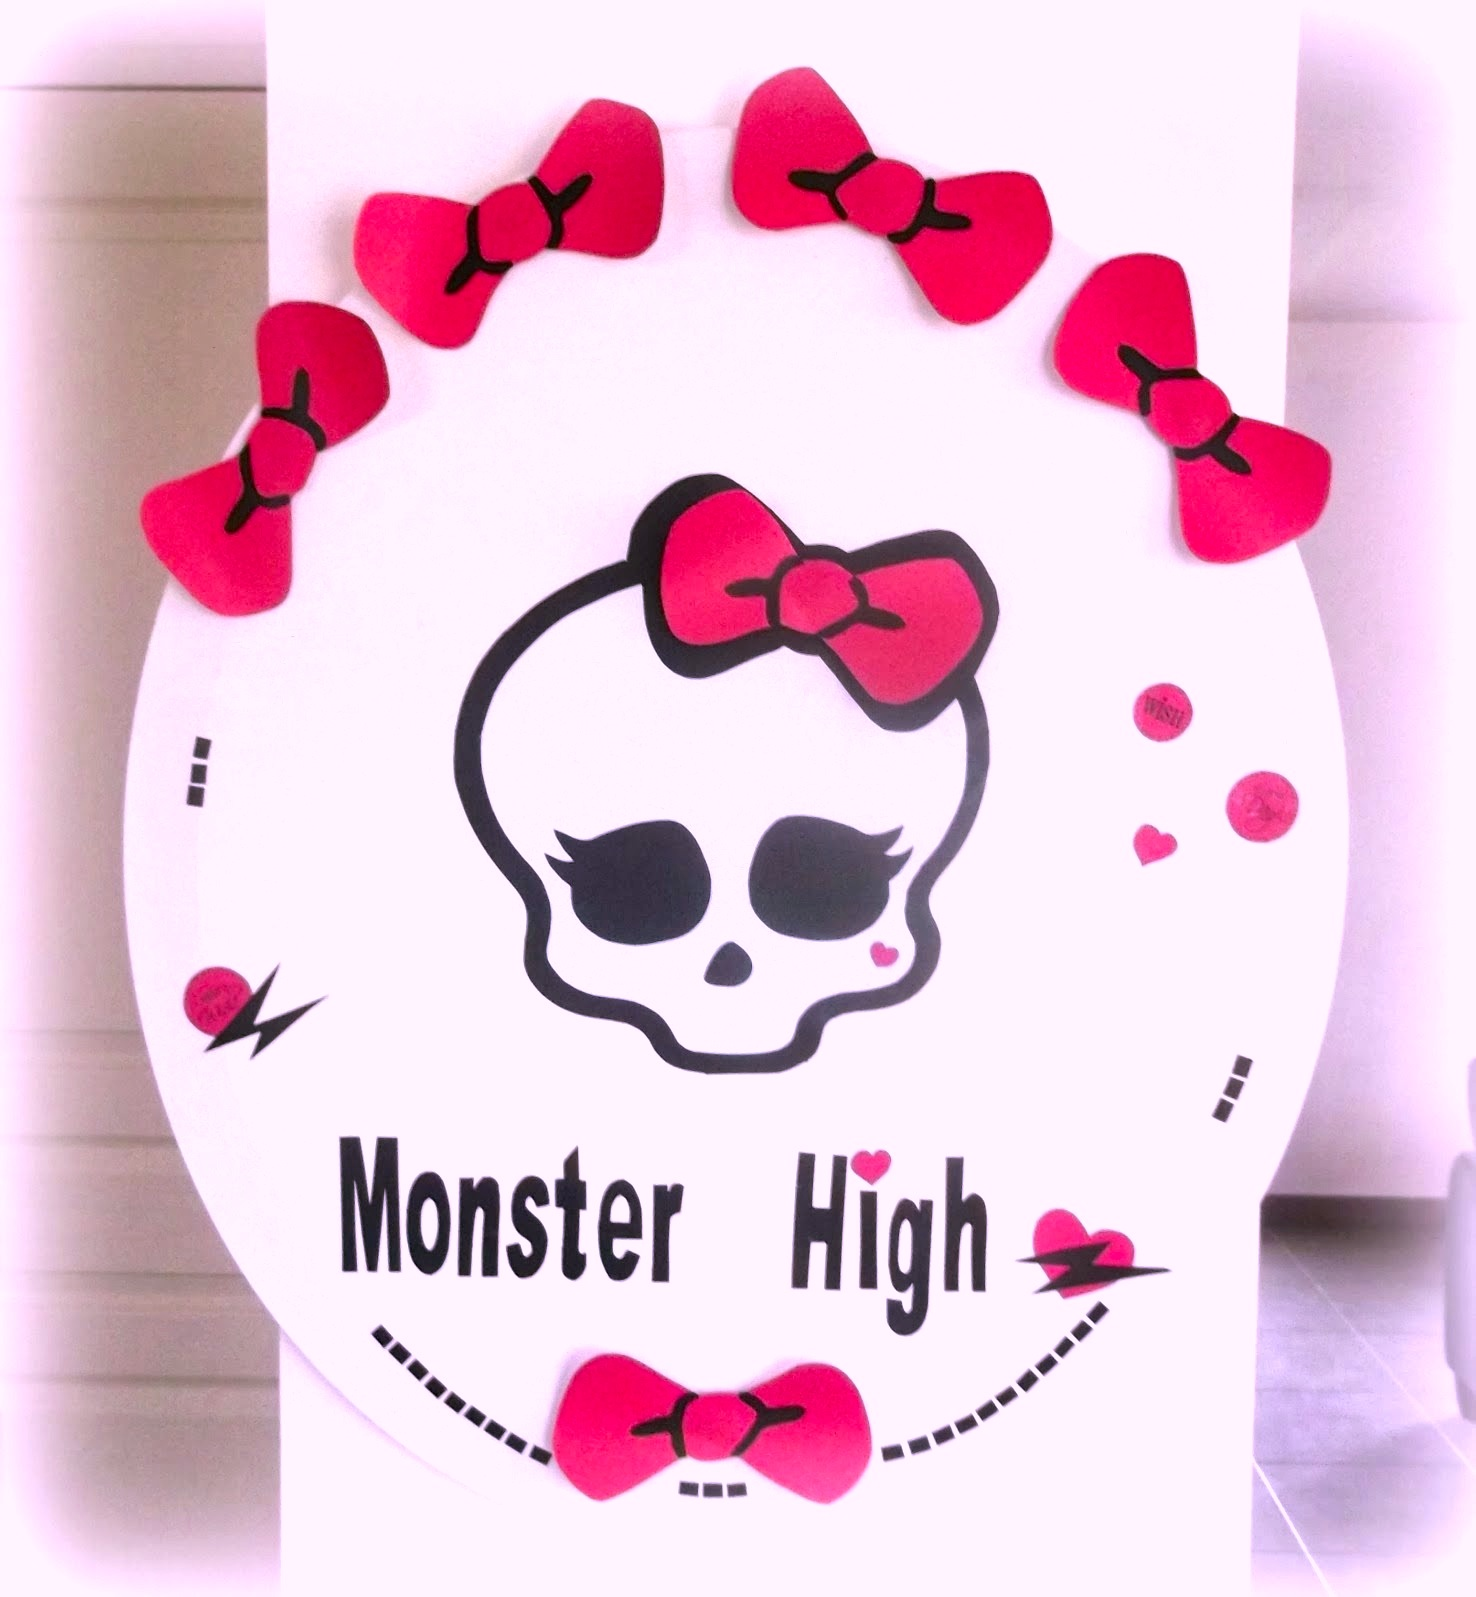 SRM Stickers Blog - Vinyl Party Game by Angélique - #vinyl #stickers #party #game #Monster High